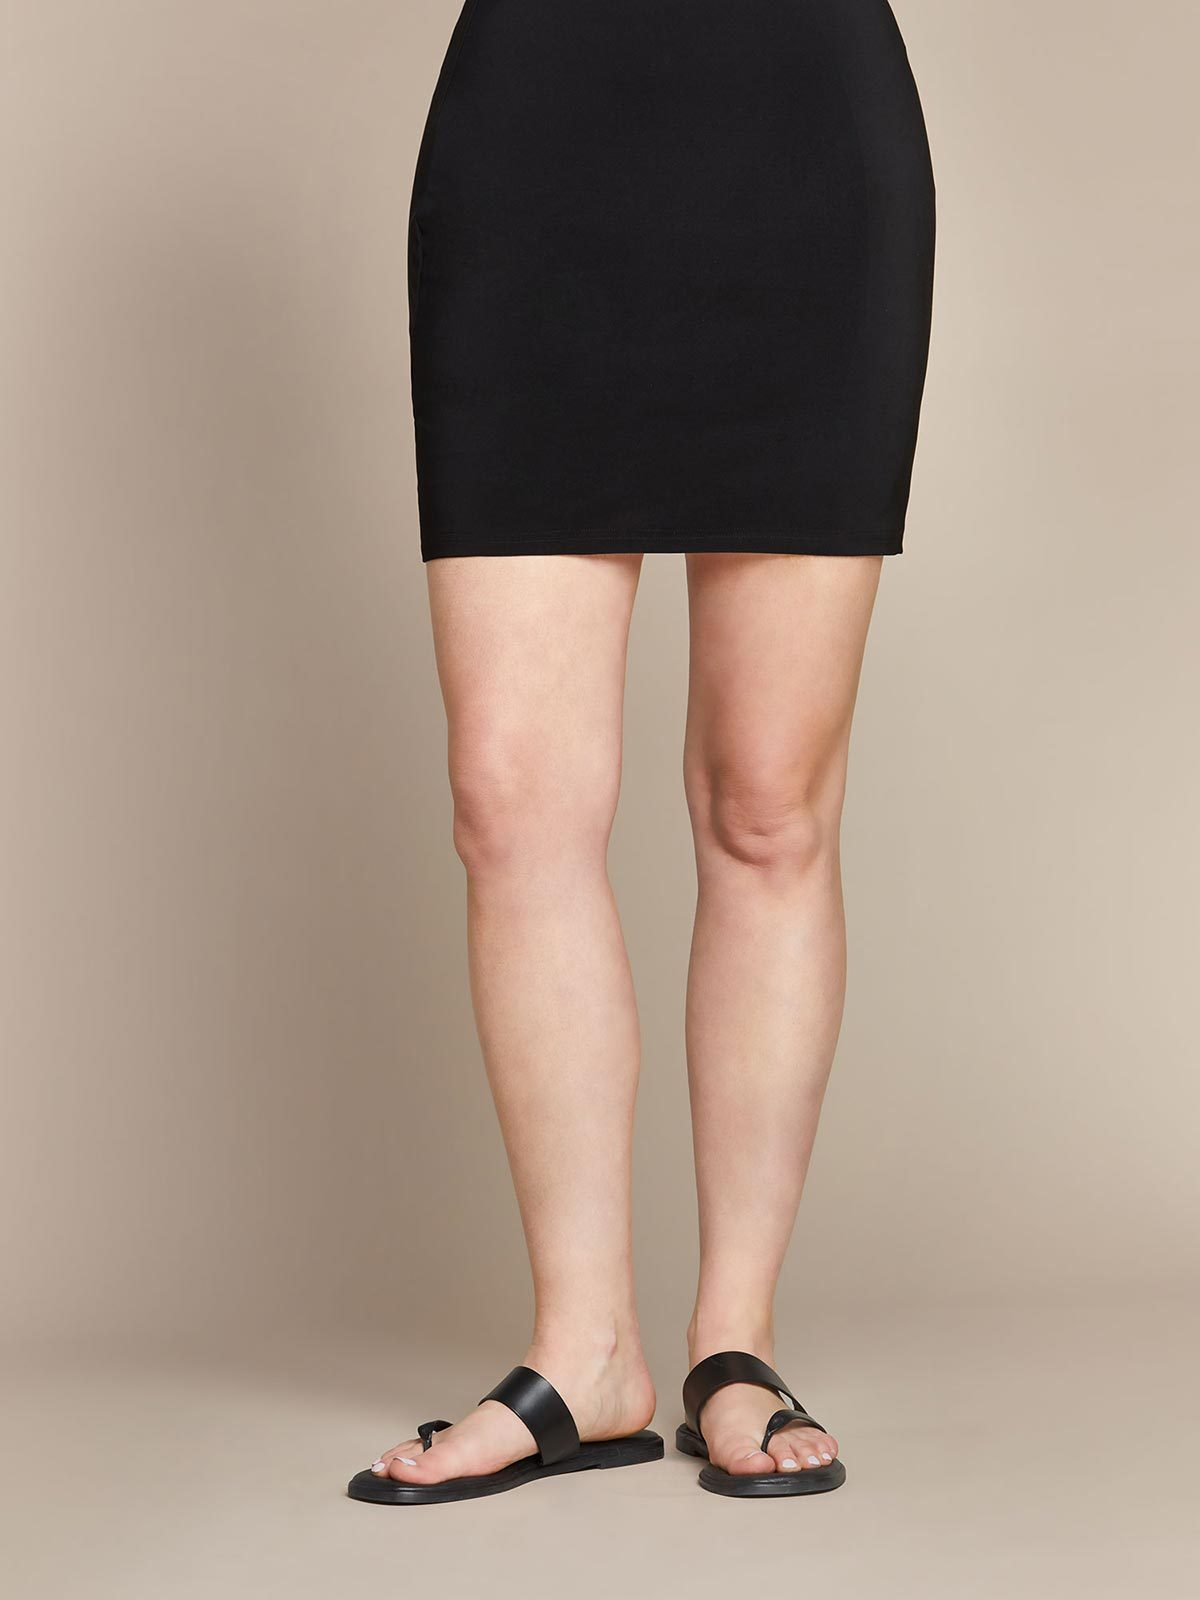 Sympli Mini Skirt - Black - Statement Boutique